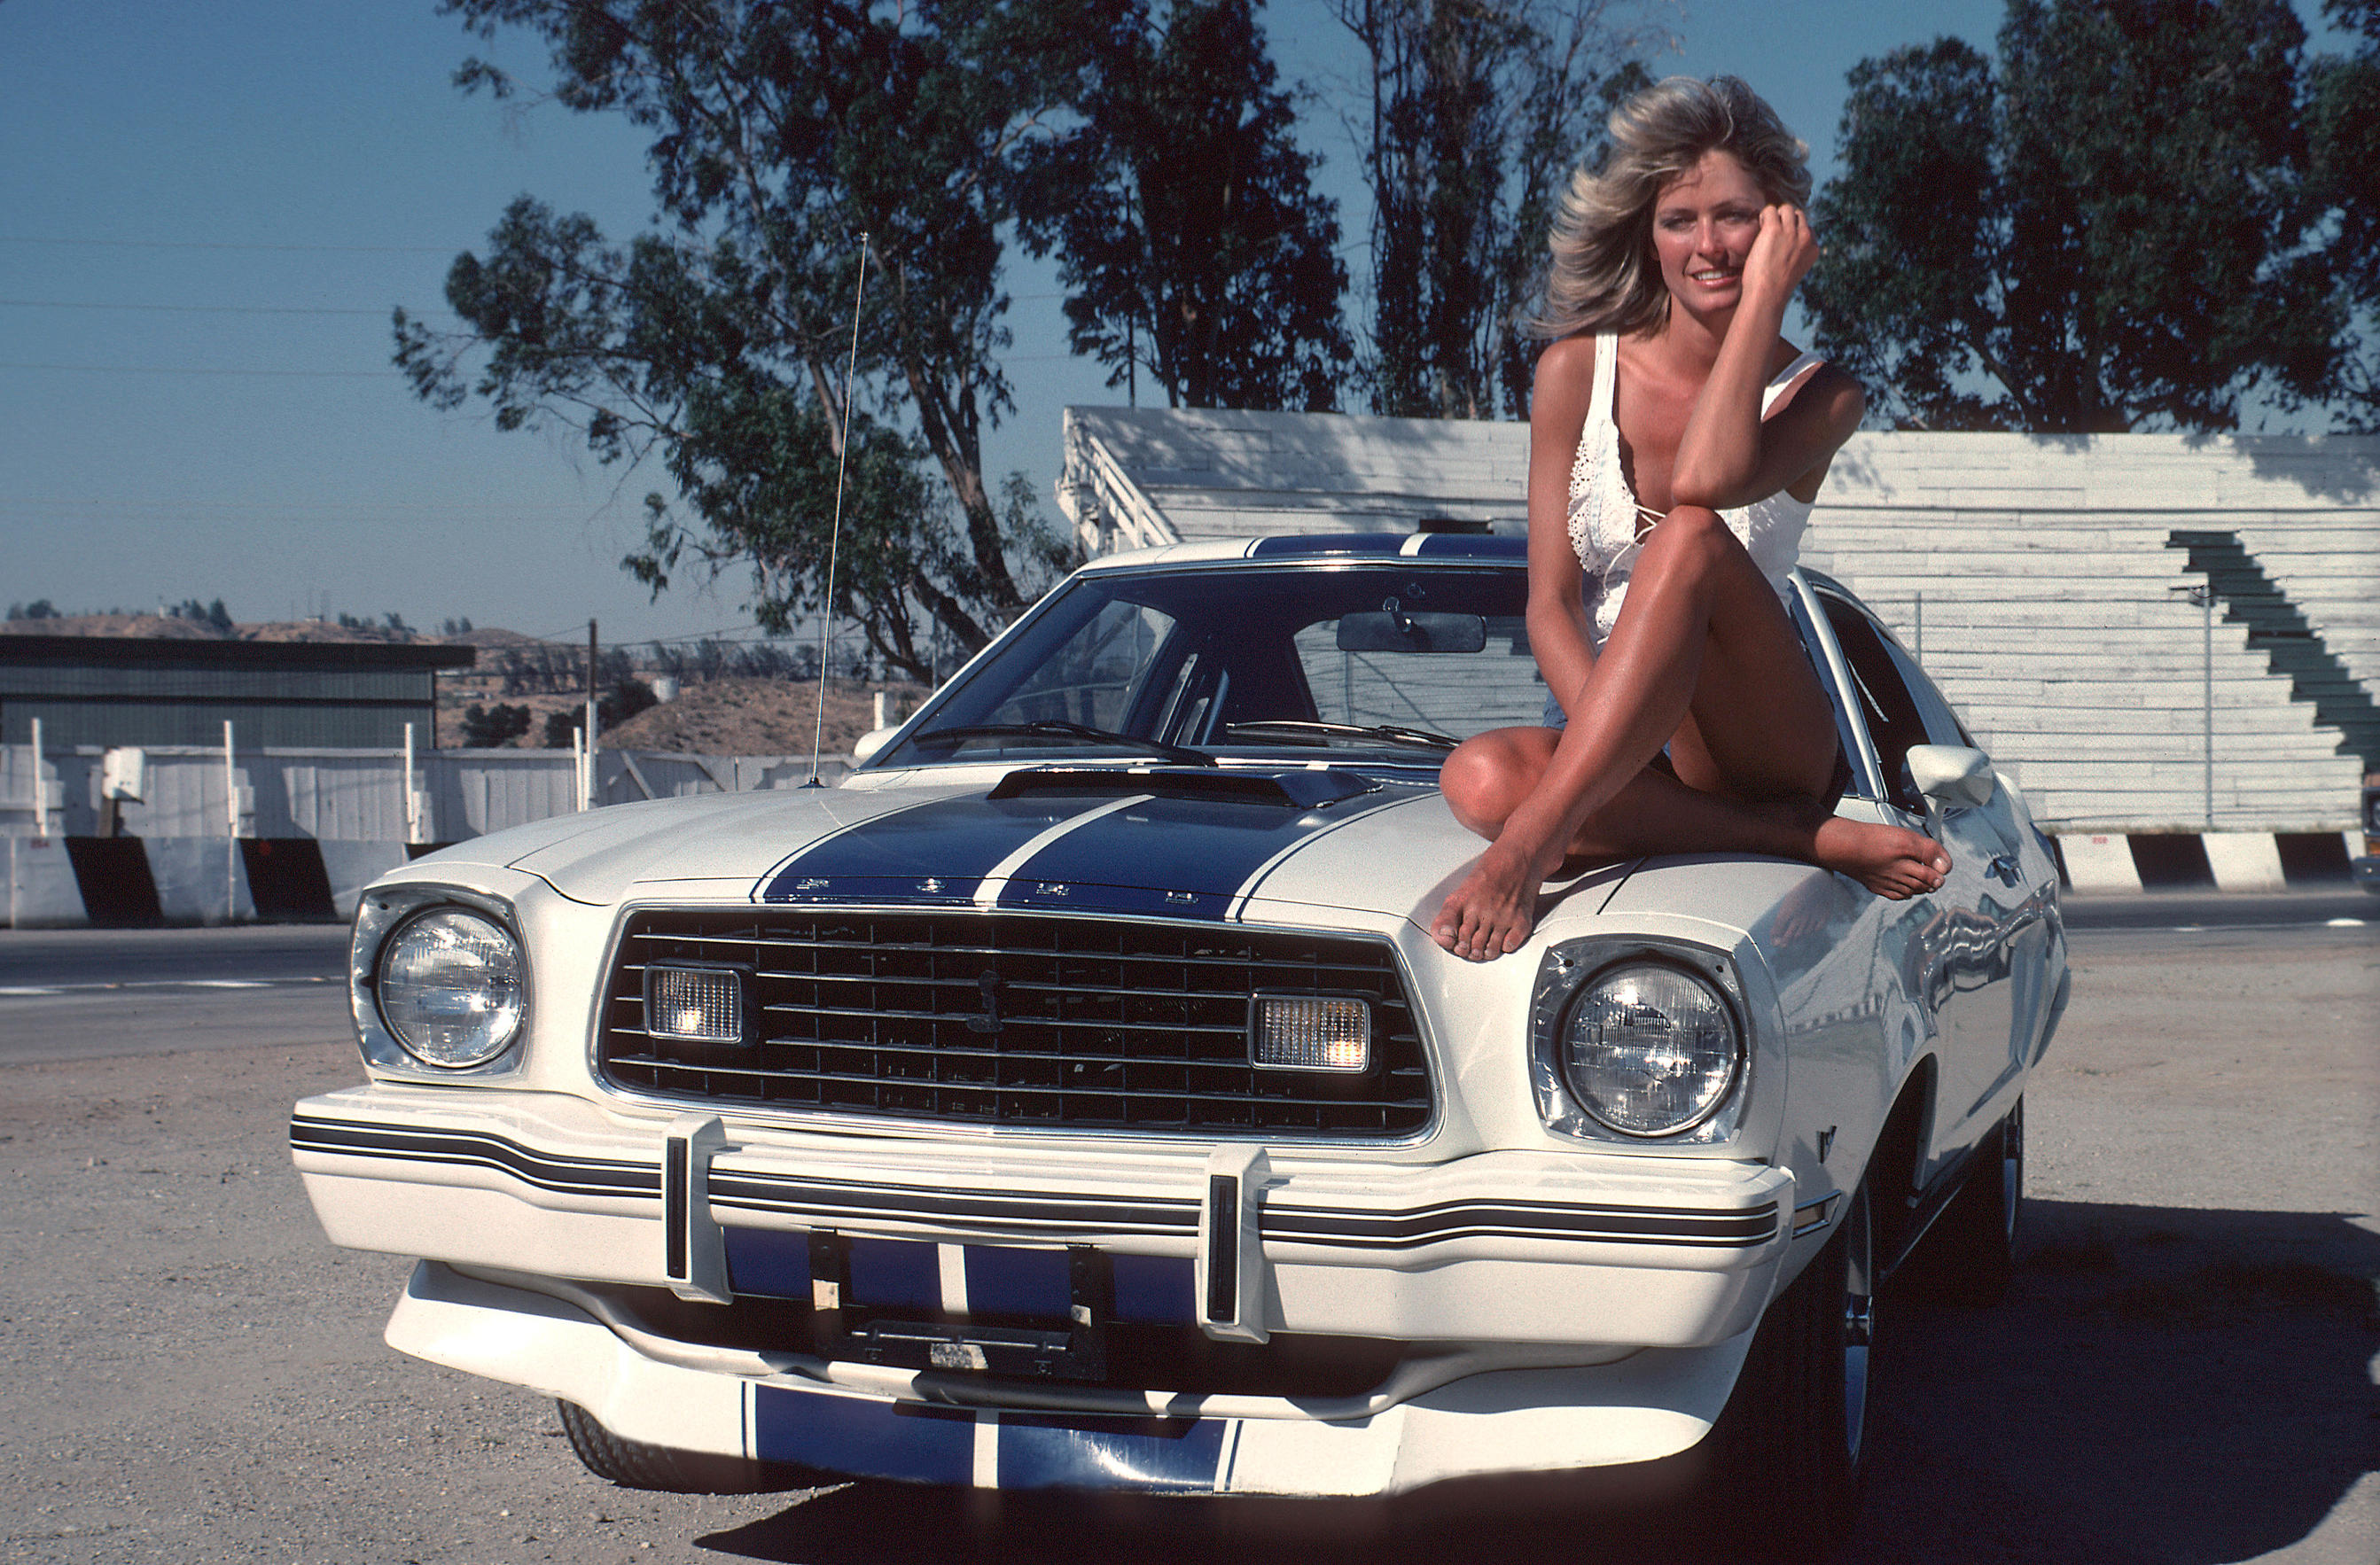 Farrah Fawcett sitting on the 1976 Ford Mustang Cobra II from Charlie's Angels